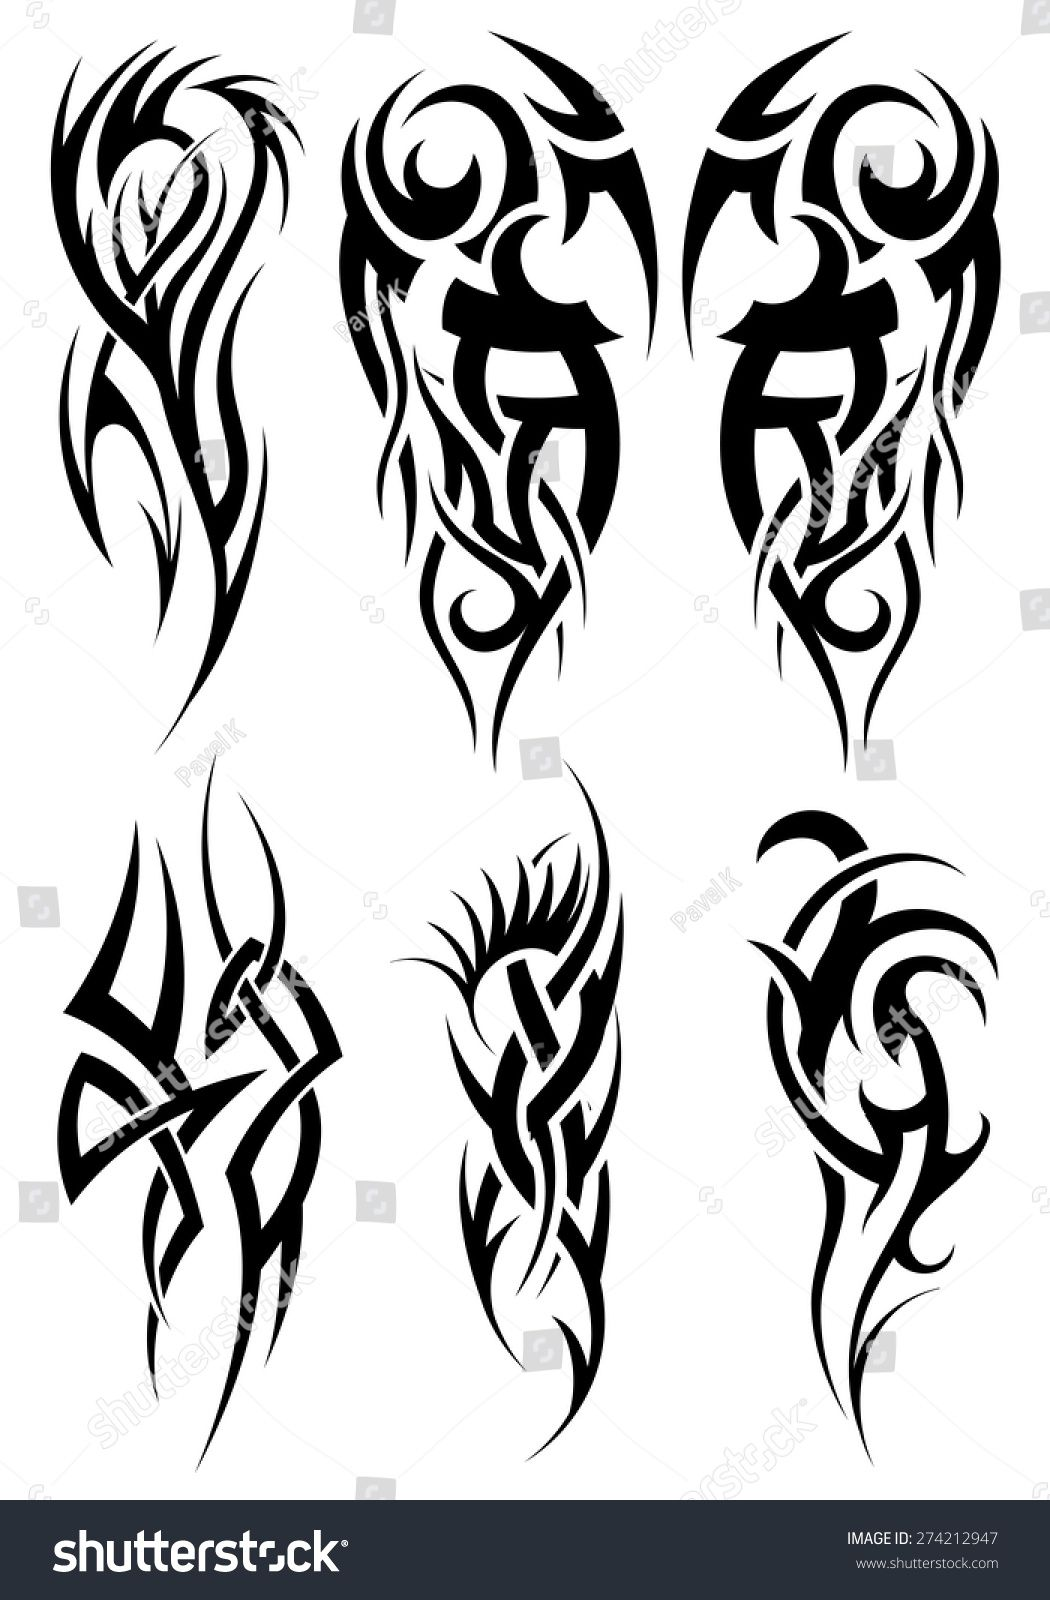 Set Of Tribal Tattoos Eps 10 Vector Illustration Without Transparency Tribal Tattoos Cool Tribal Tattoos Tribal Arm Tattoos